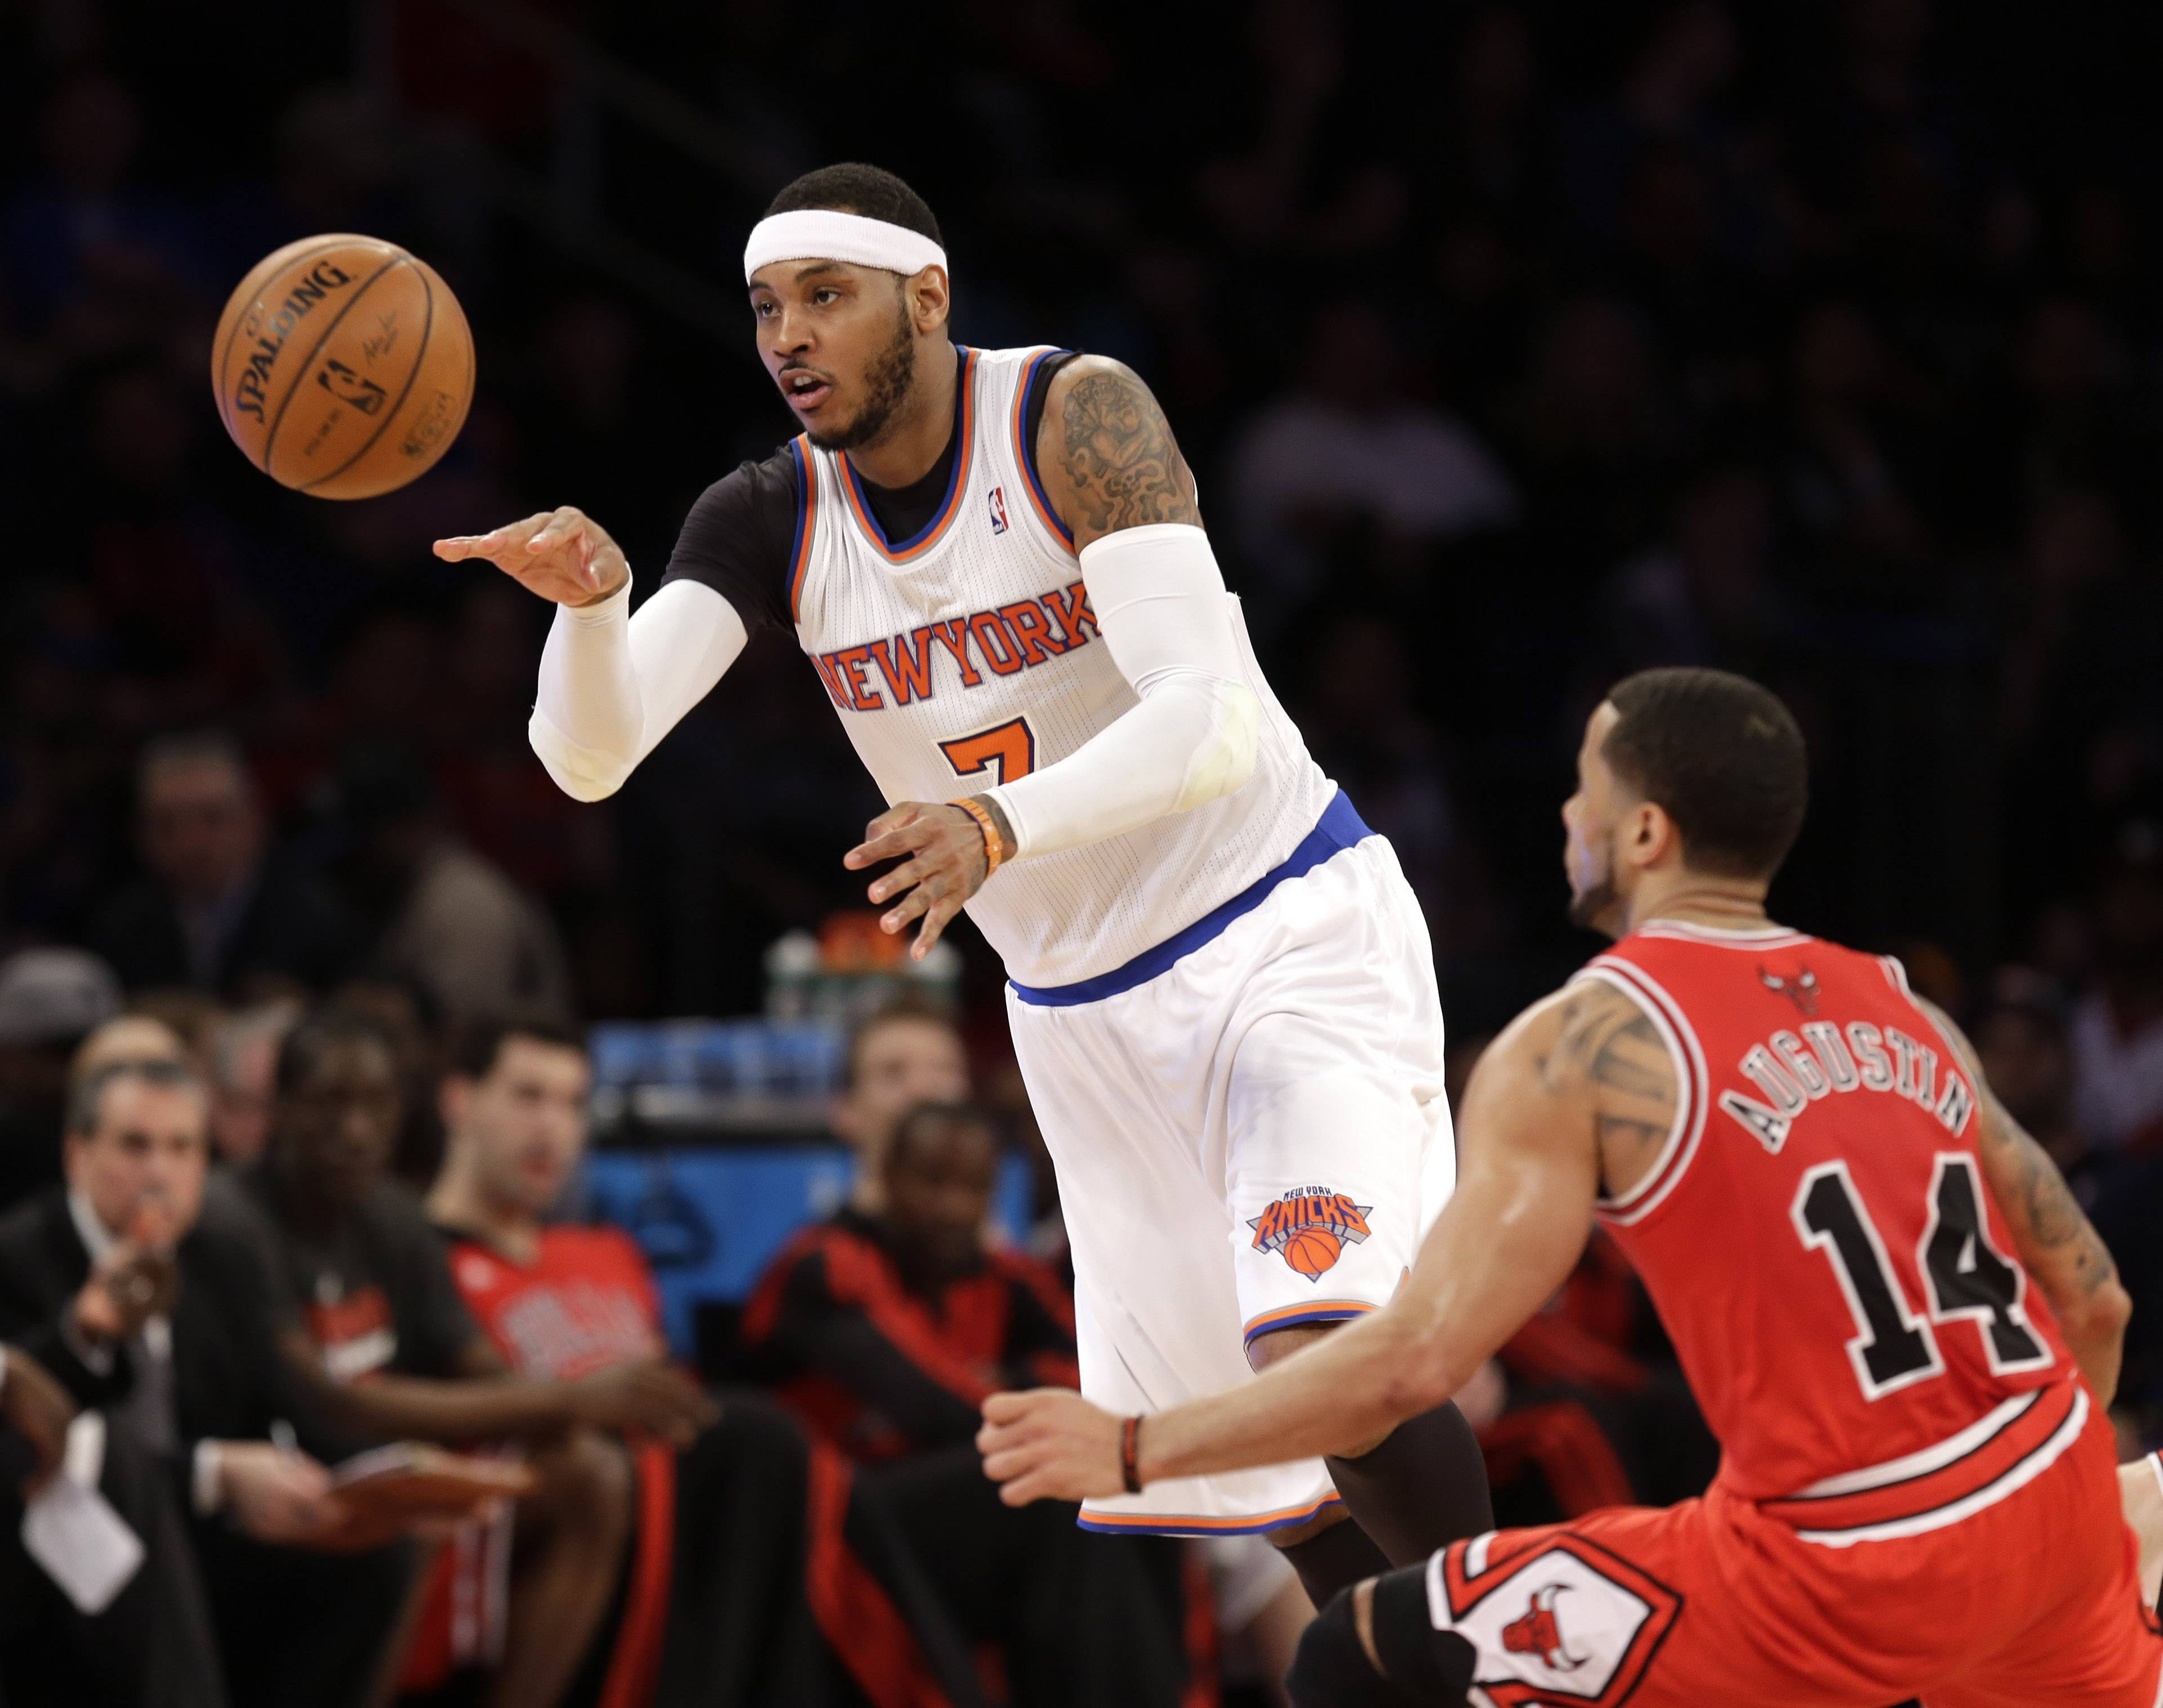 New York Knicks' Carmelo Anthony, left, passes the ball past Chicago Bulls' D.J. Augustin during the first half of the NBA basketball game, Sunday, April 13, 2014 in New York. The Knicks defeated the Bulls 100-89.